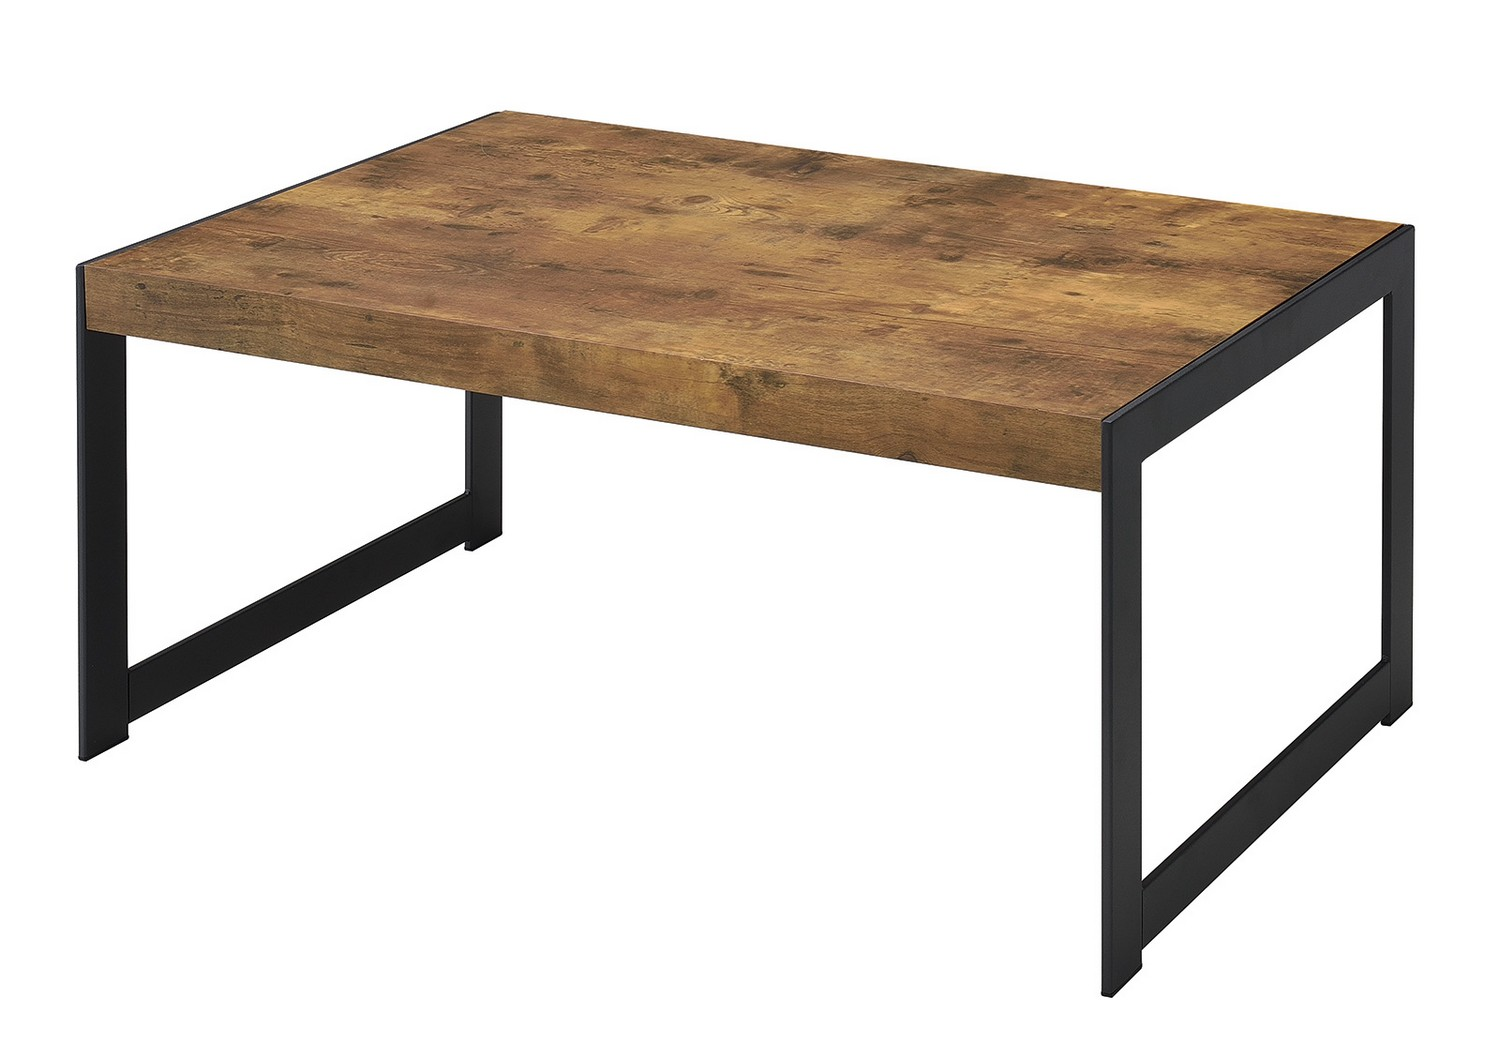 Coaster 704028 Coffee/Cocktail Table - Antique Nutmeg/gunmetal